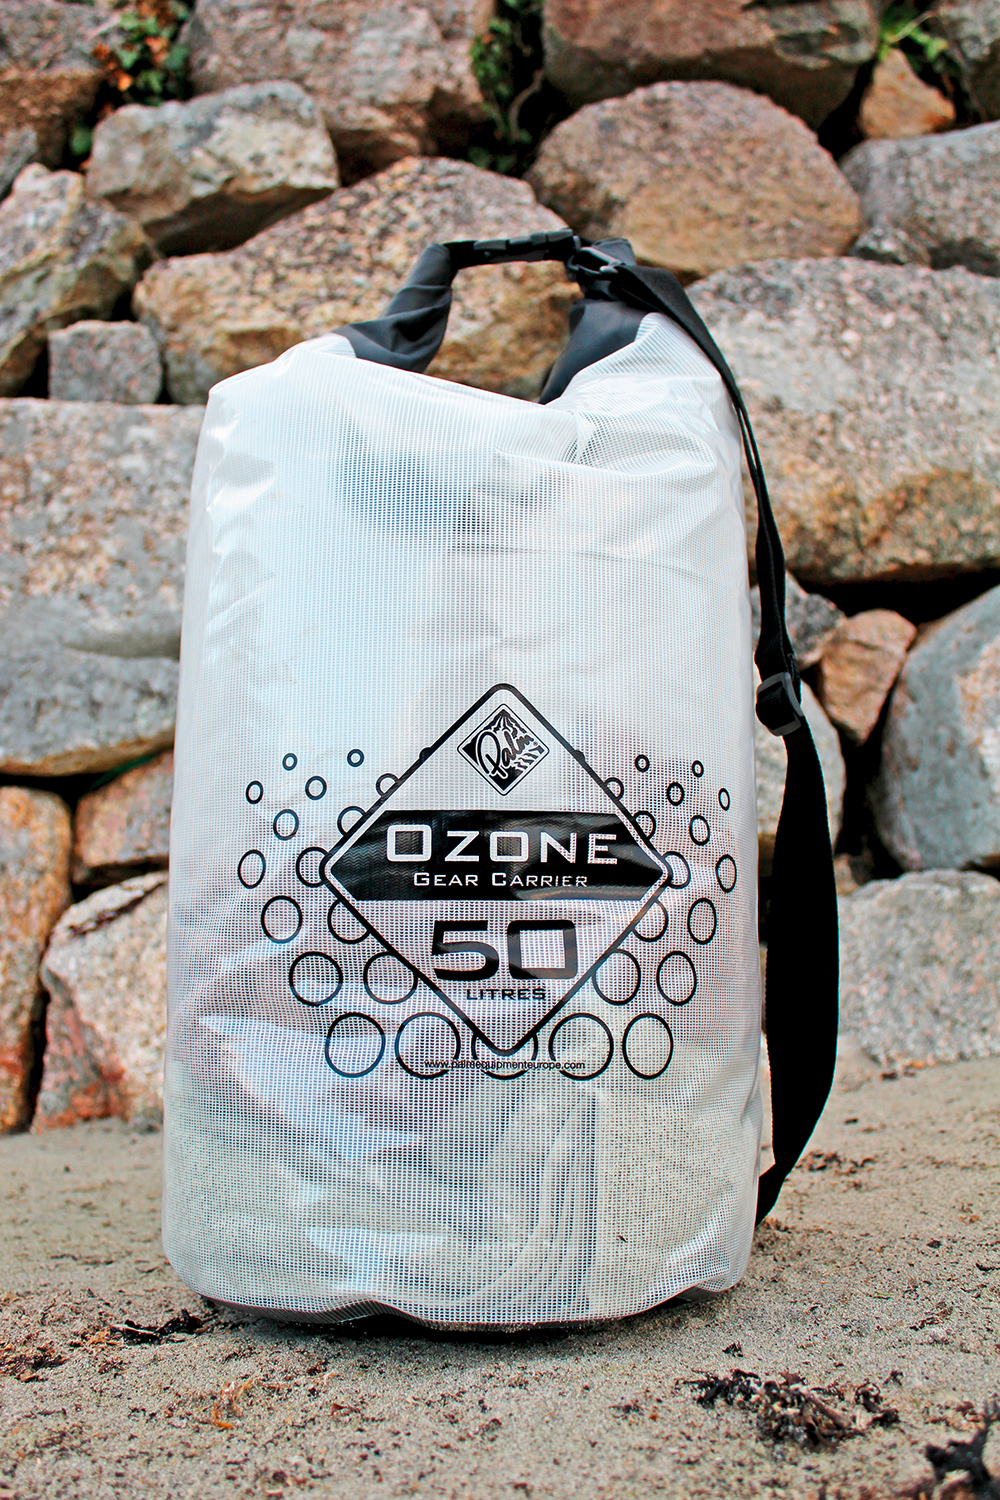 The smaller Ozone dry bag features transparent sides